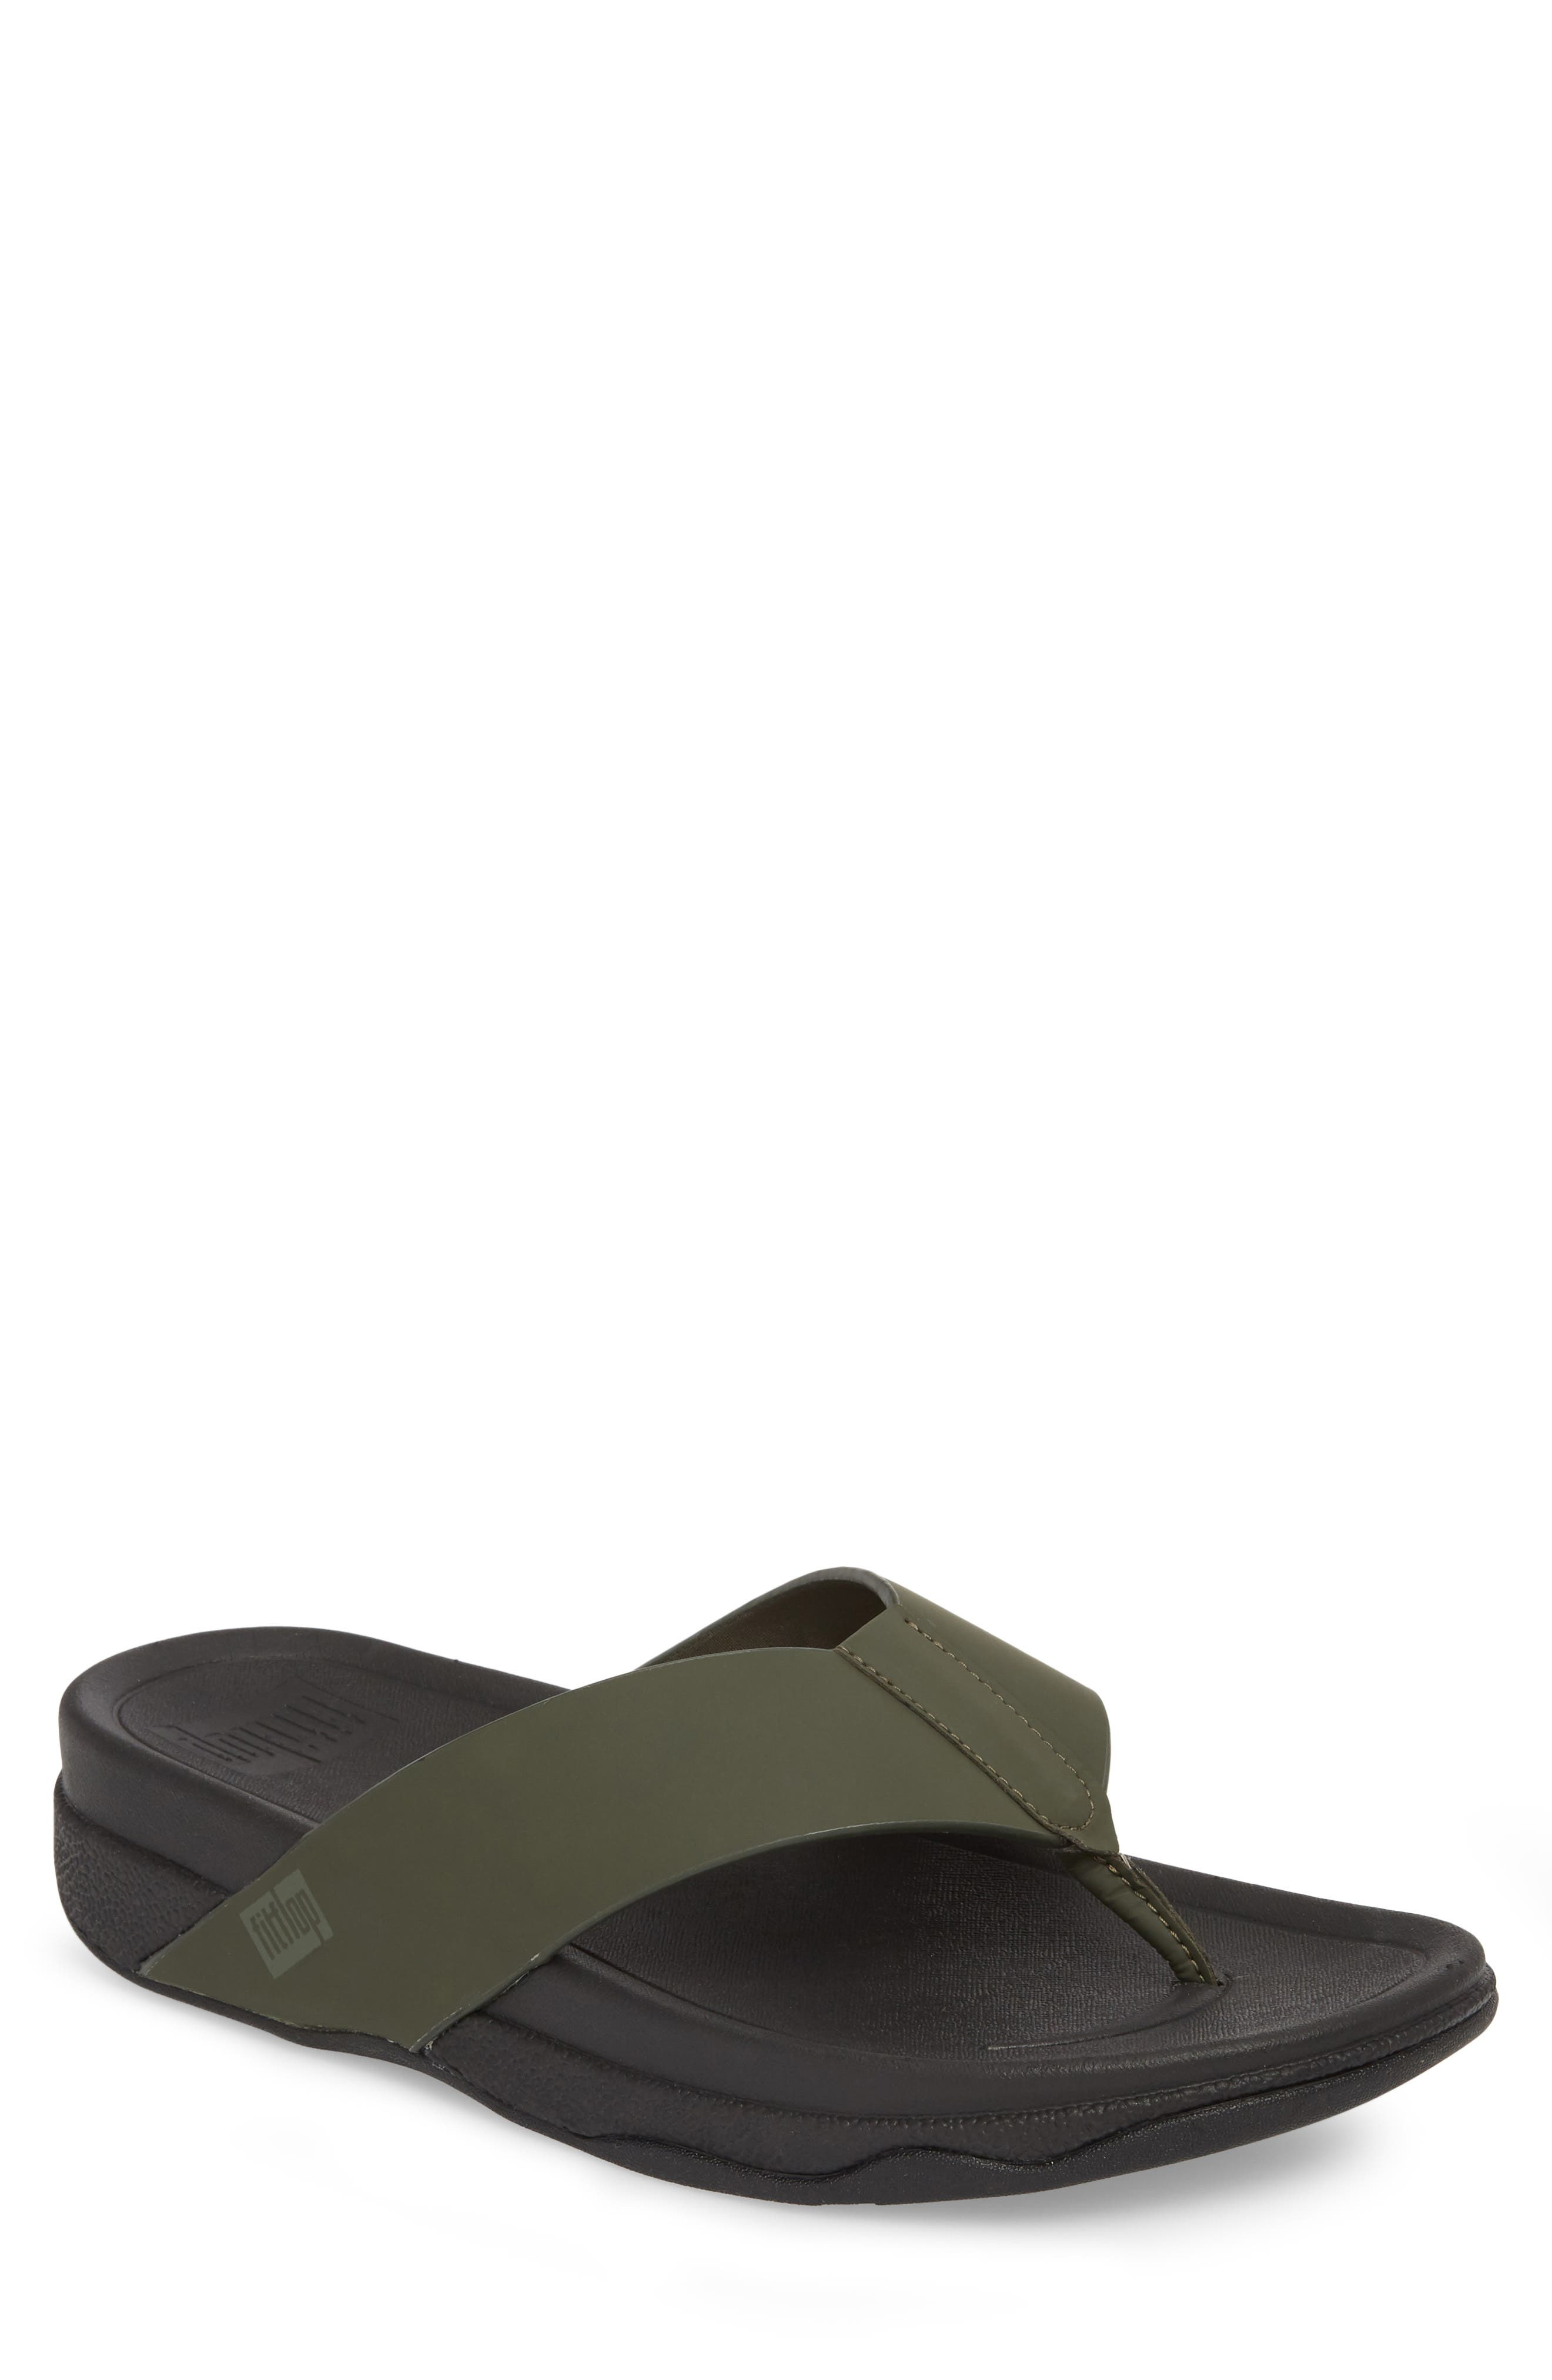 Surfer Toe Flip Flop,                             Main thumbnail 1, color,                             Camouflage Green